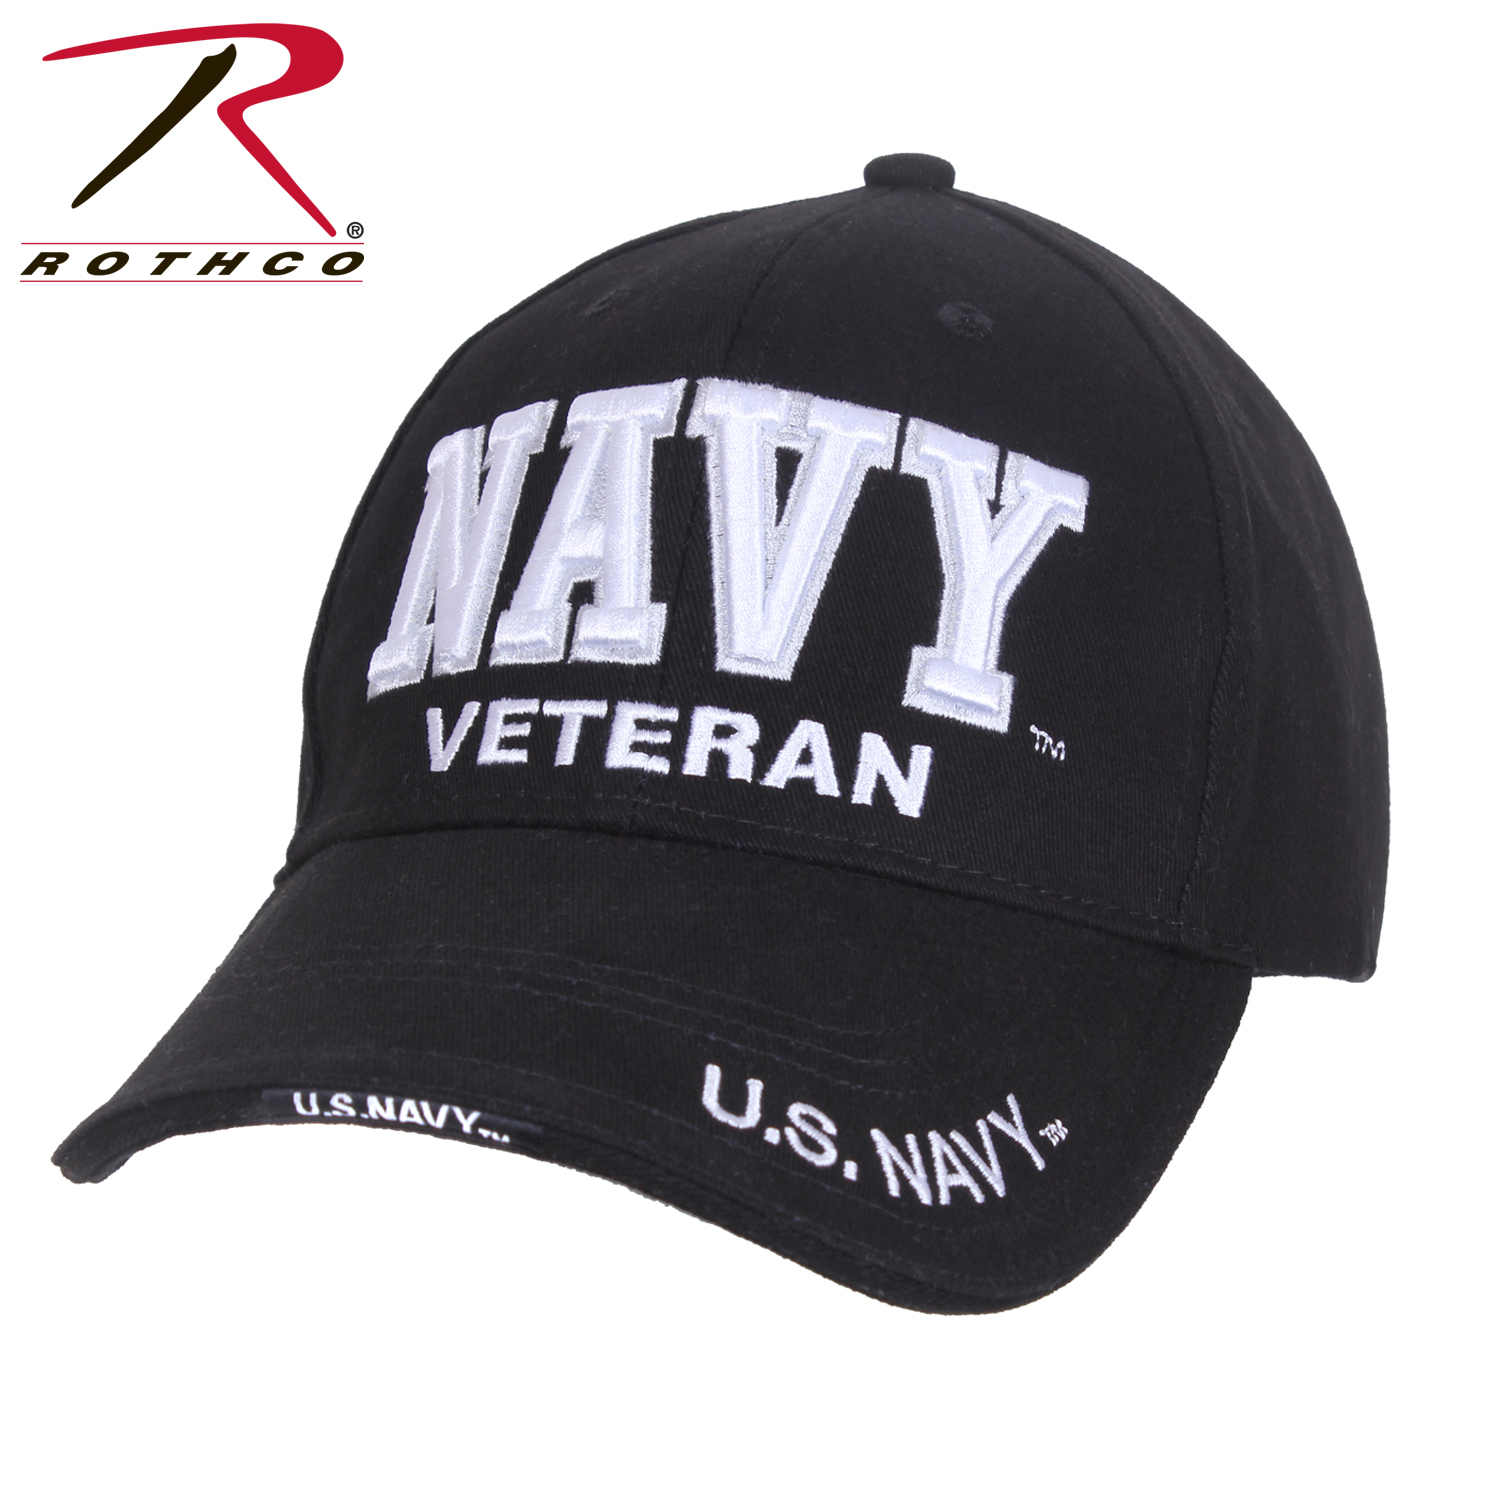 Rothco Deluxe U S  Navy Veteran Cap Embroidered Low Profile (Item #3953) -  Black